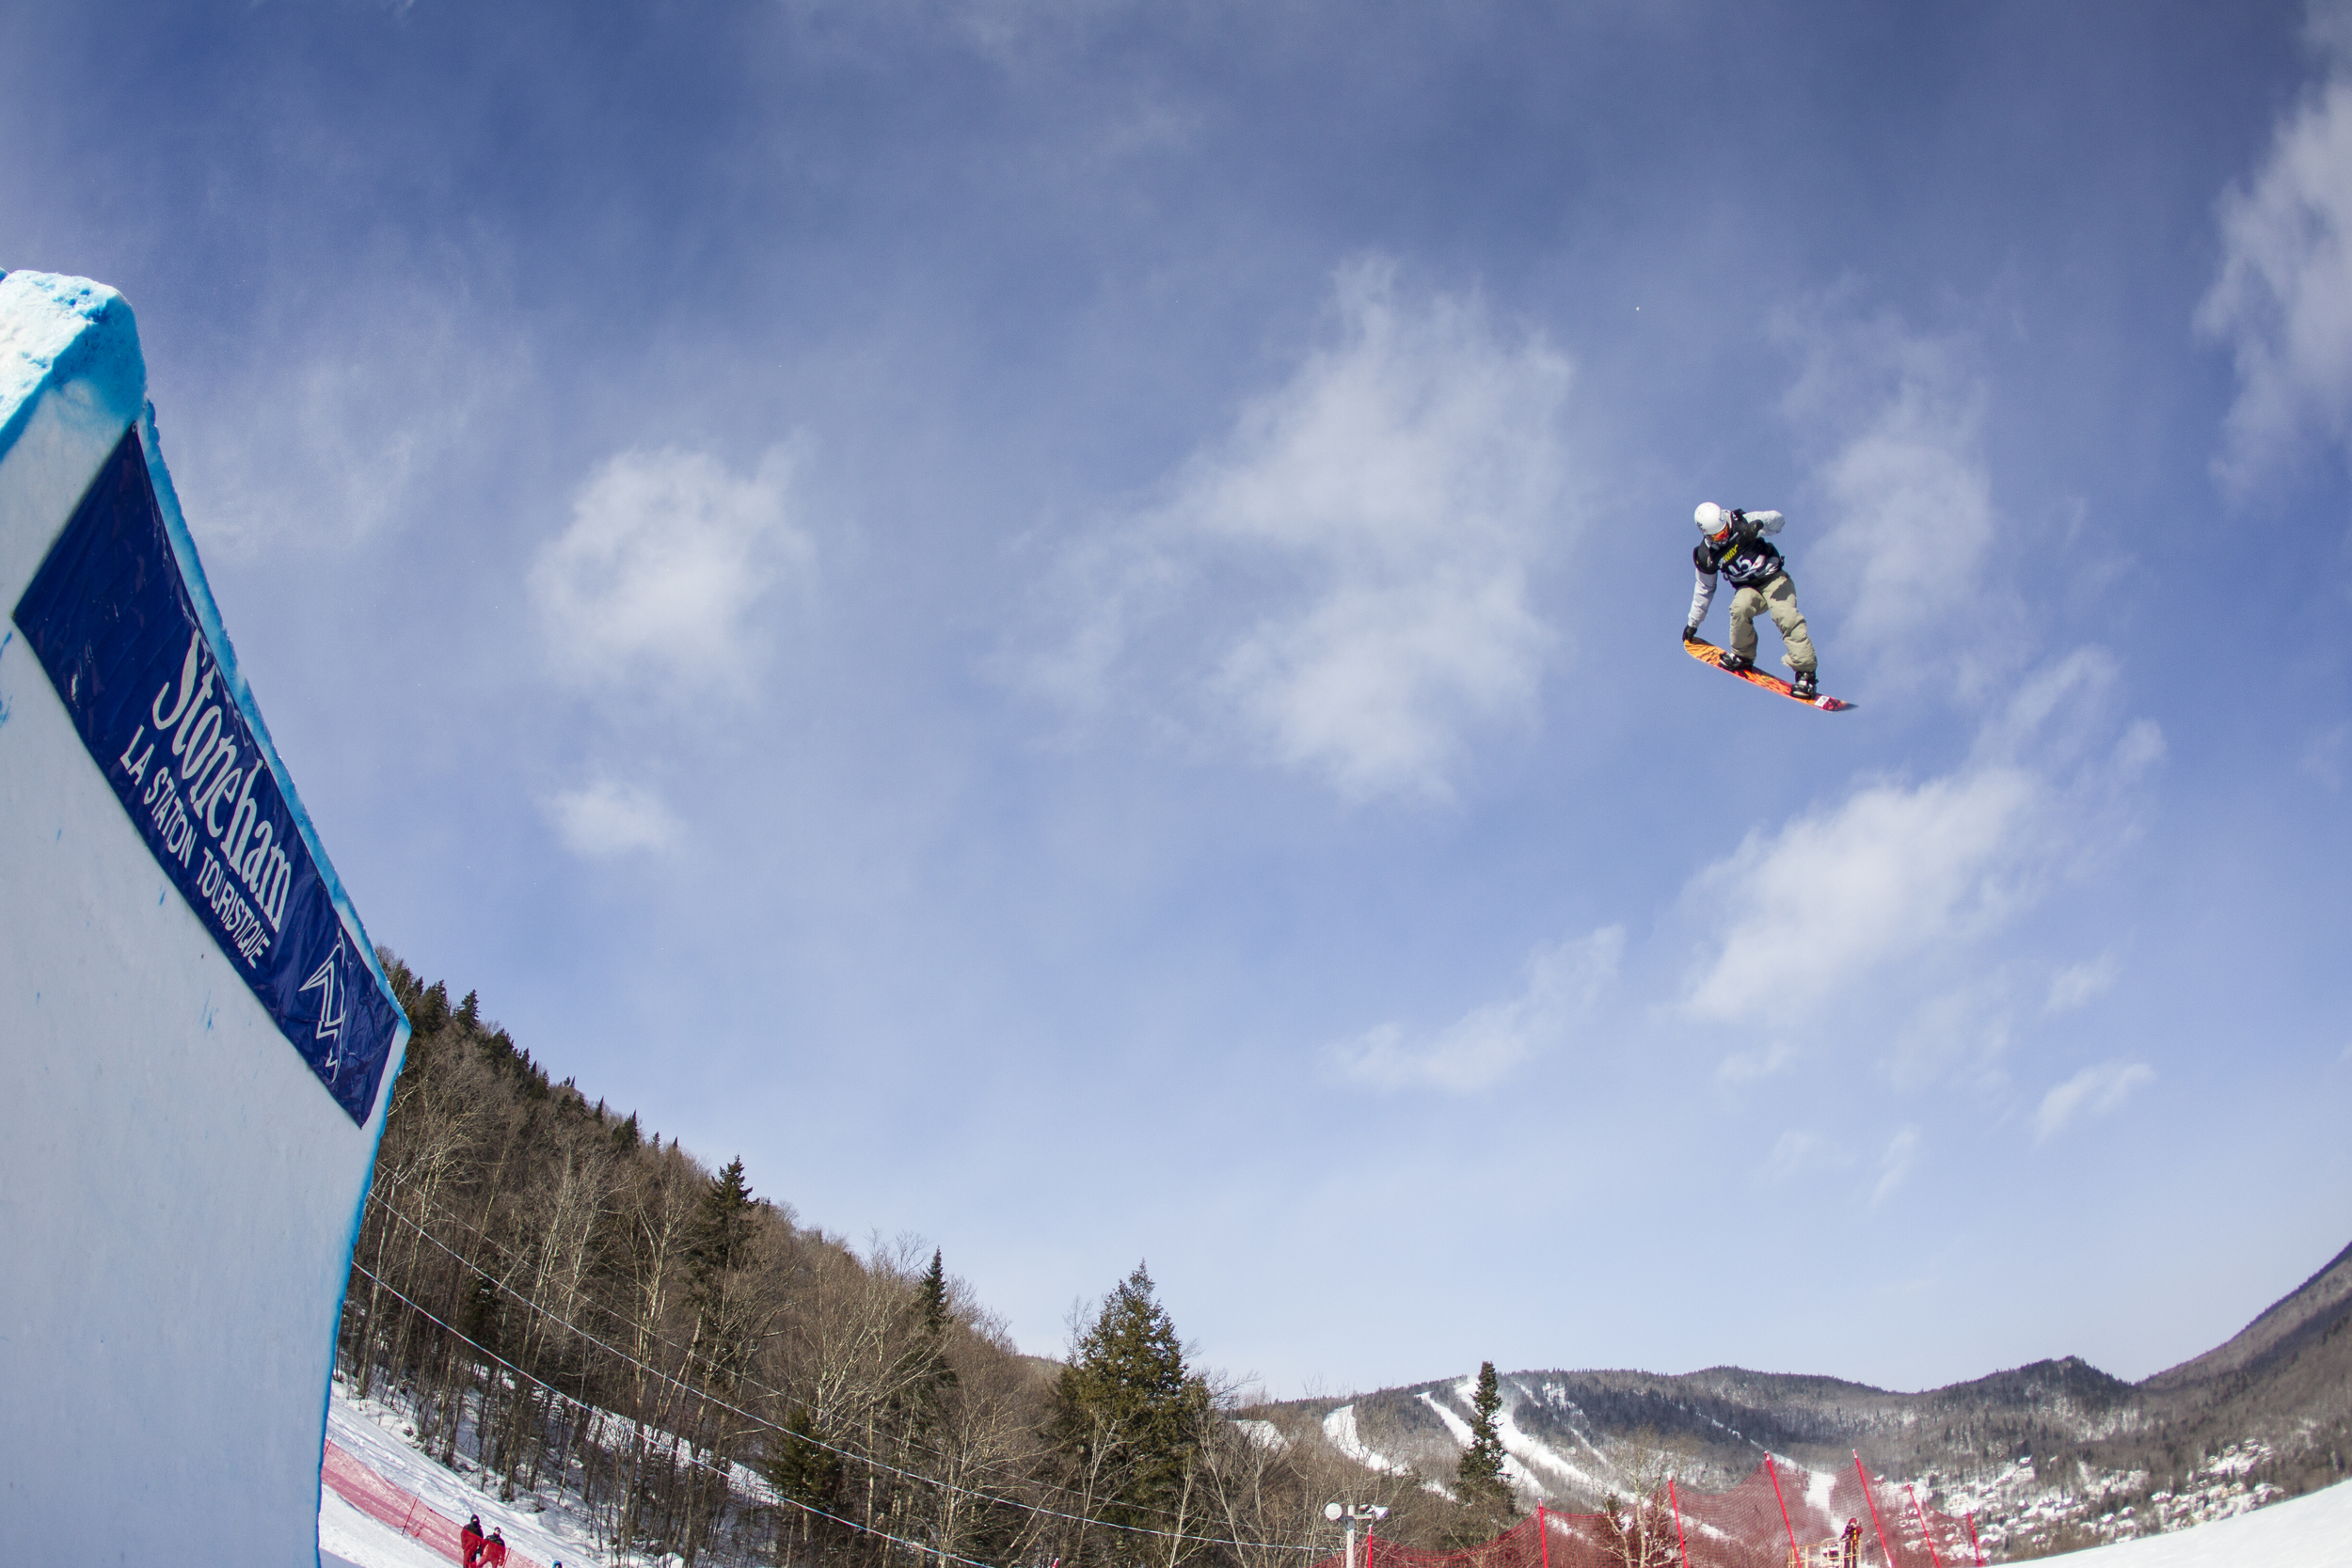 2013-01-18_FIS-WC-SLOPESTYLE_0996.JPG